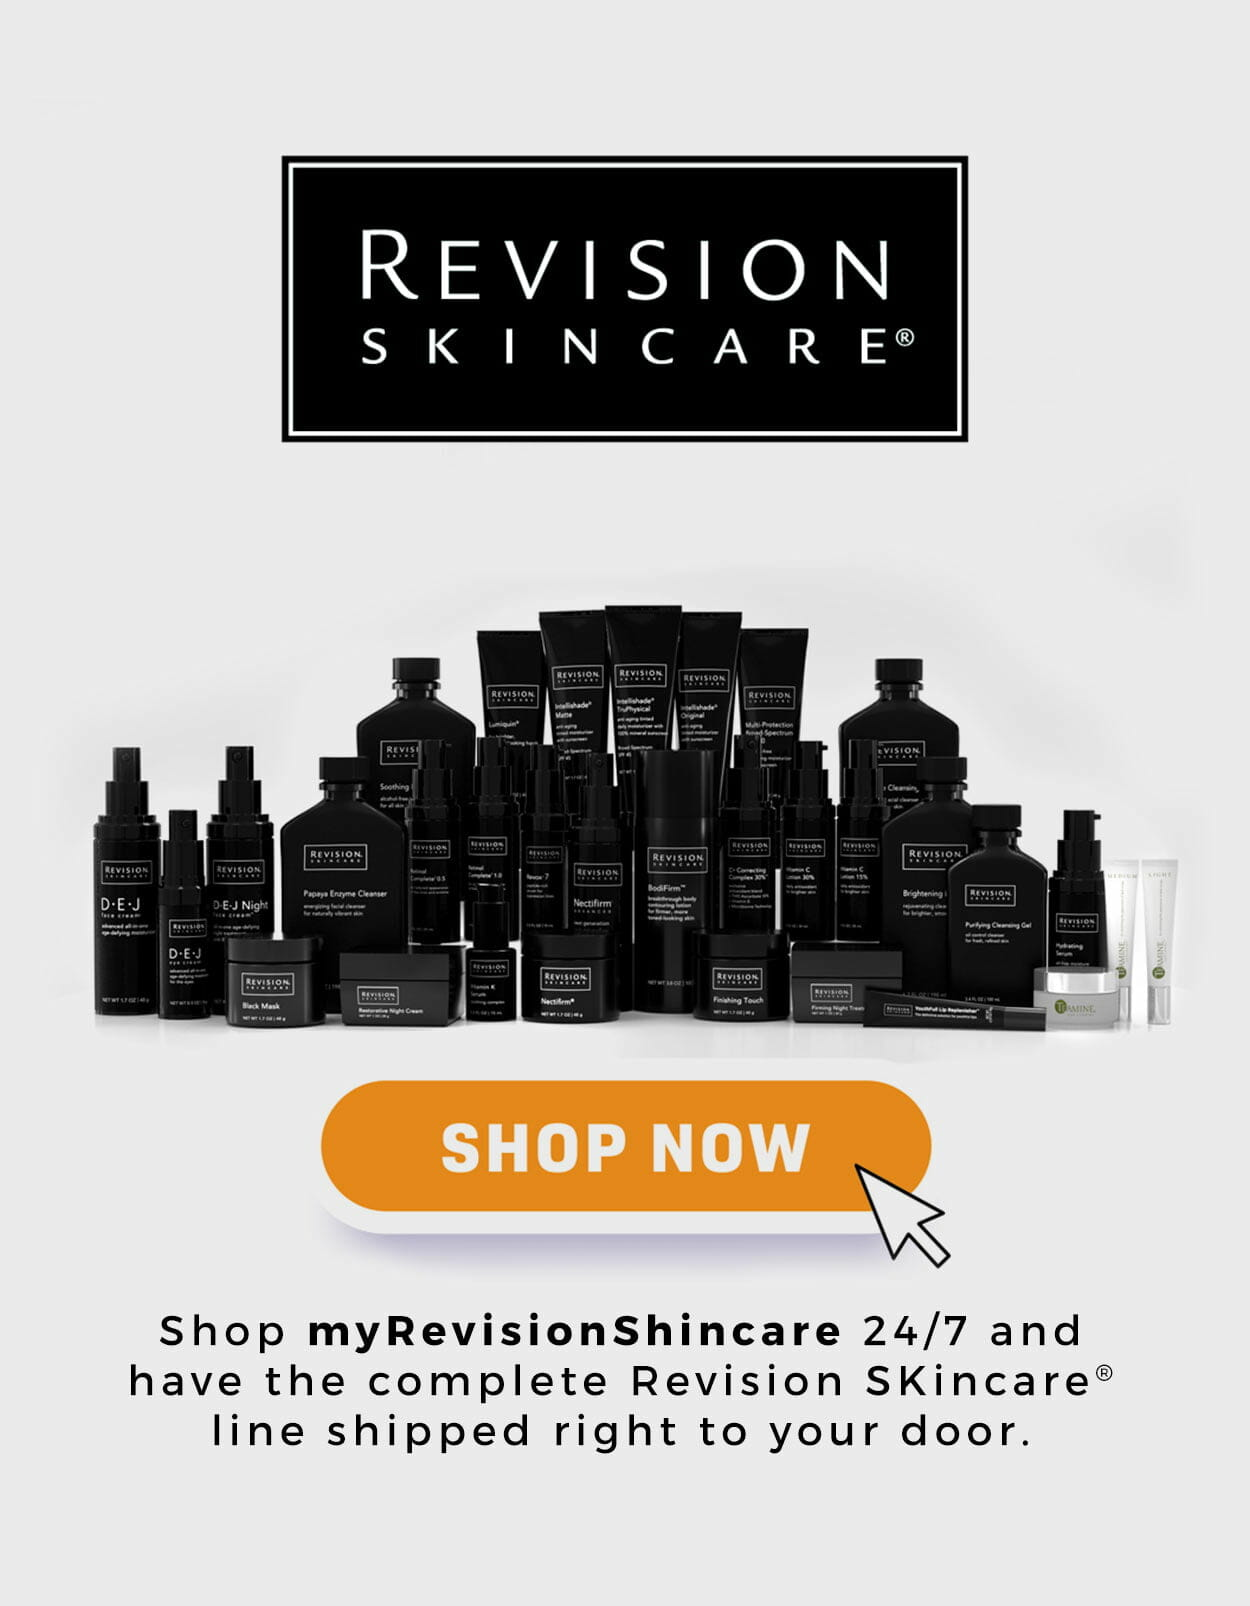 Revision Skincare Spa Products at Solana Aesthetics and Wellness in Lemont, Illinois